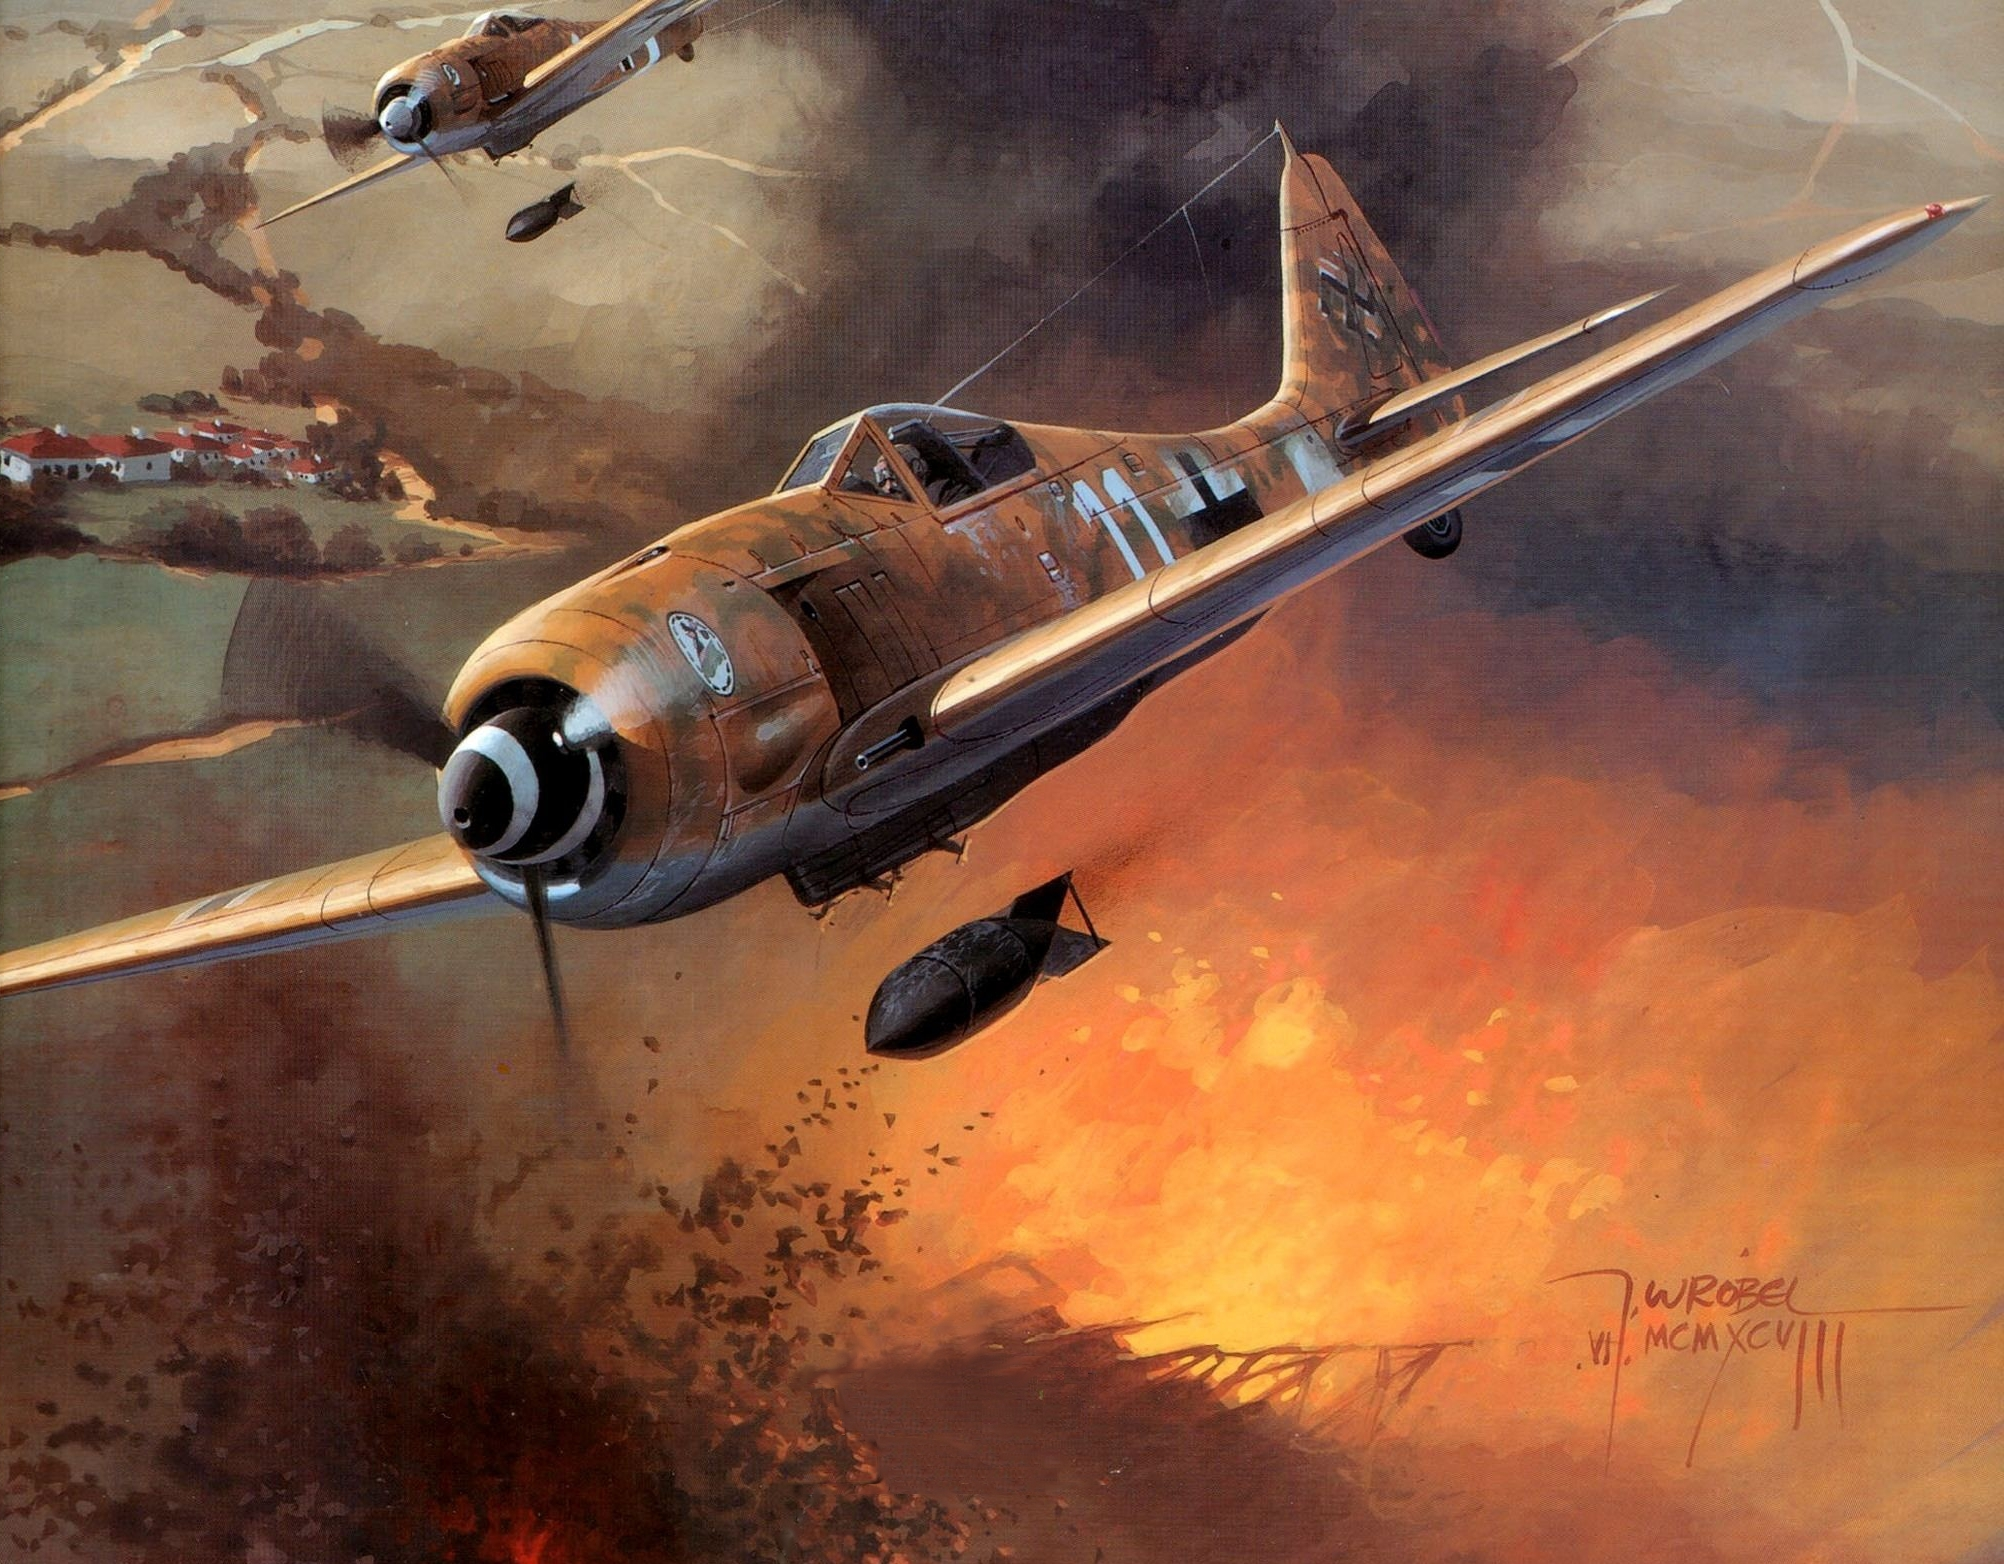 Aircraft ships Focke Wulf HD Wallpaper